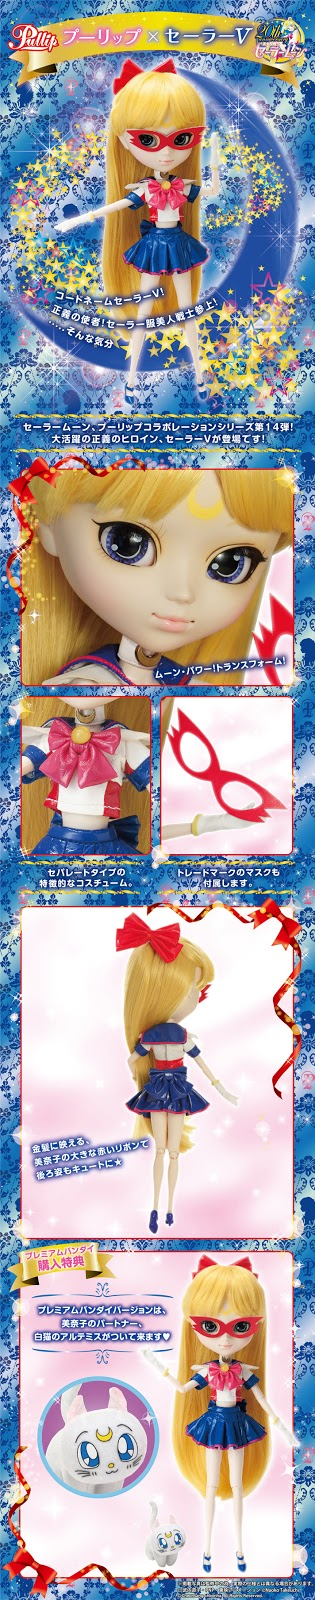 http://biginjap.com/en/dolls/12832-sailor-moon-pullip-sailor-v-ltd-ver.html